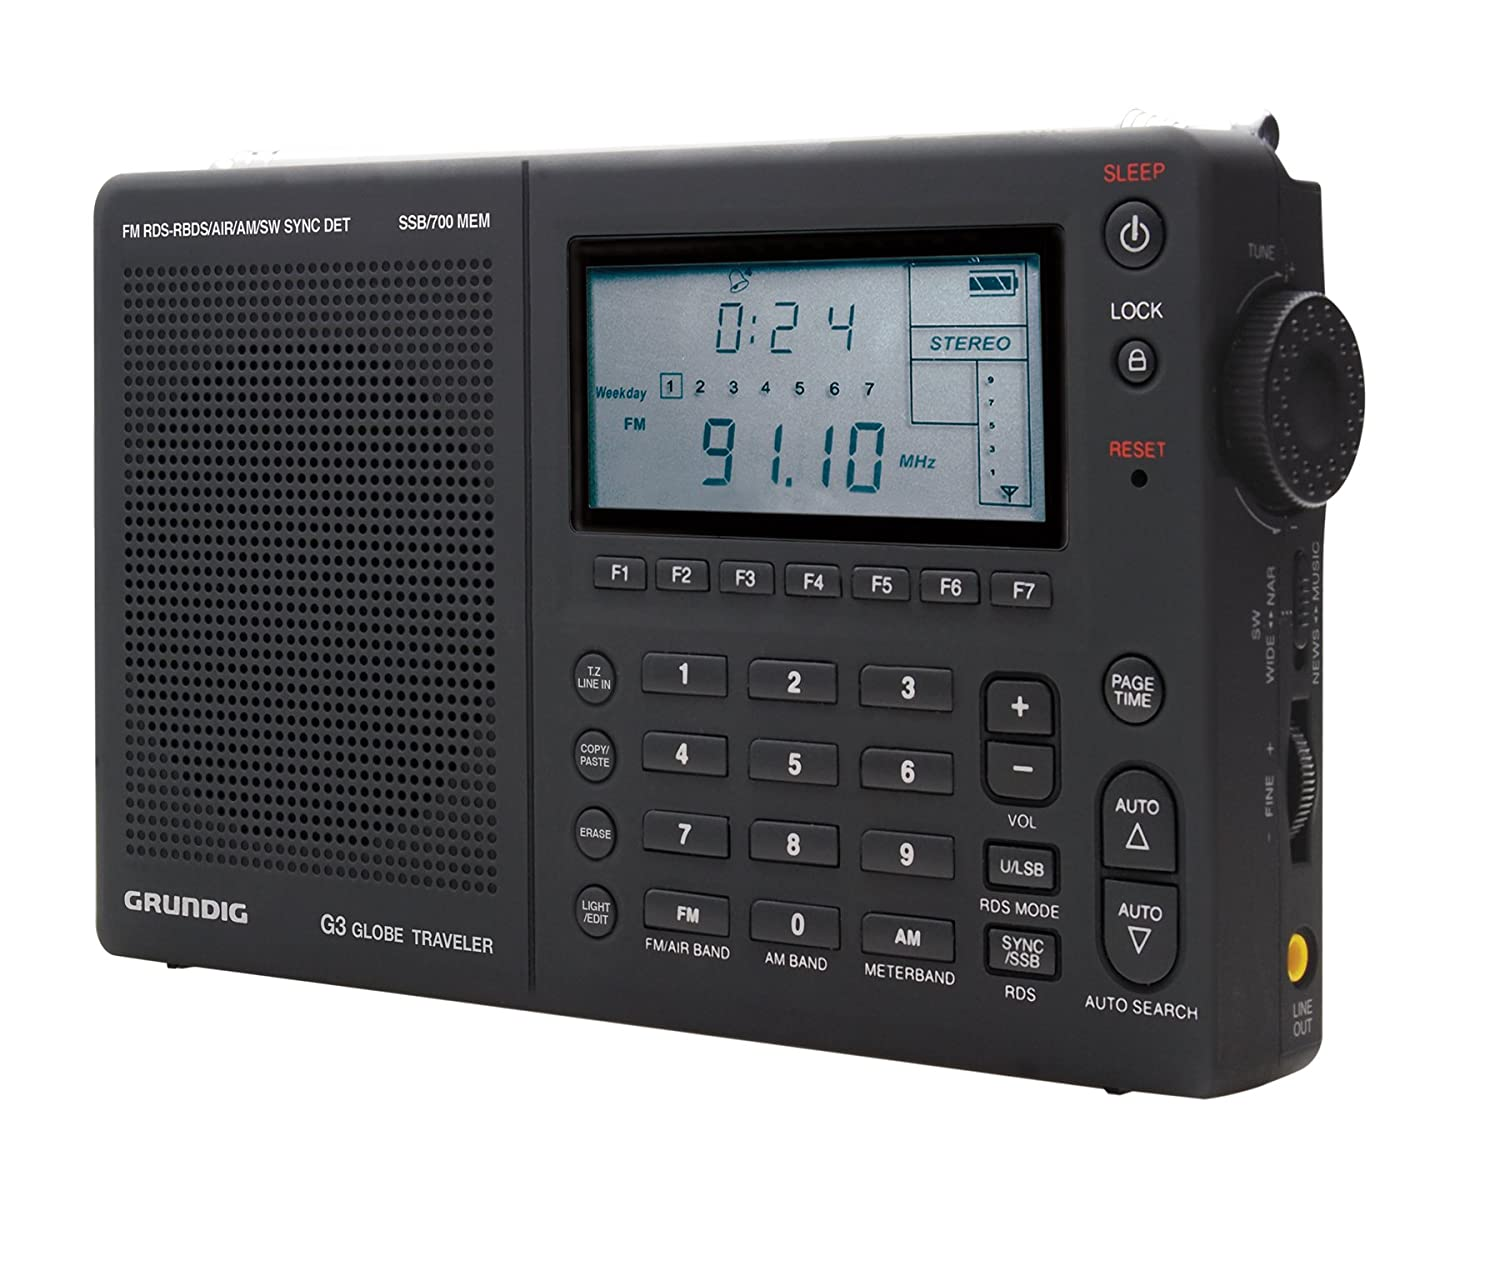 Grundig Globe Traveler G3 Portable AM/FM/Shortwave Radio, Black &#8211; (NG3B) $90.87